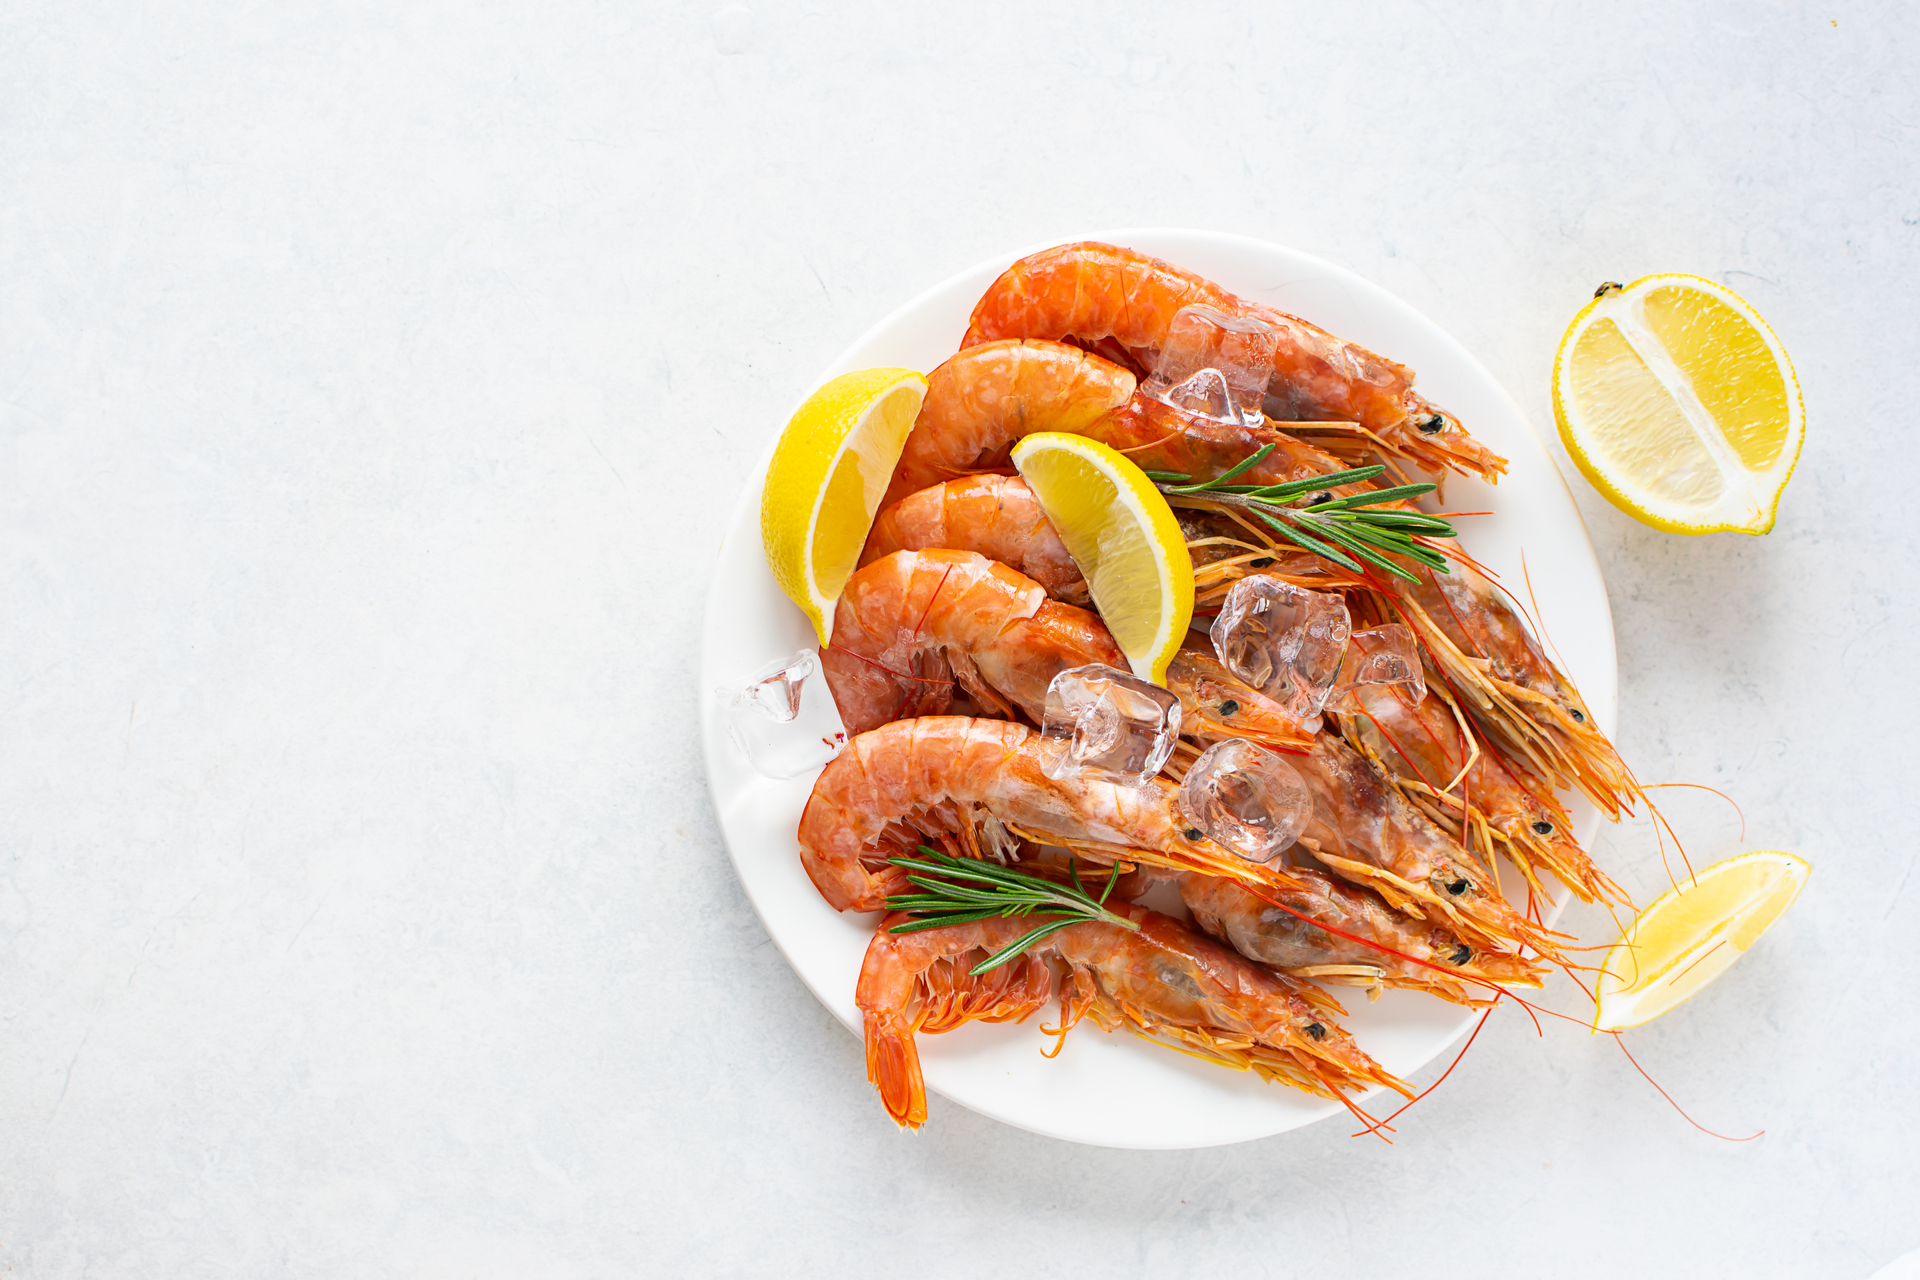 Fresh tiger shrimps or prawns with lemon, herbs and ice on white marble table top view.